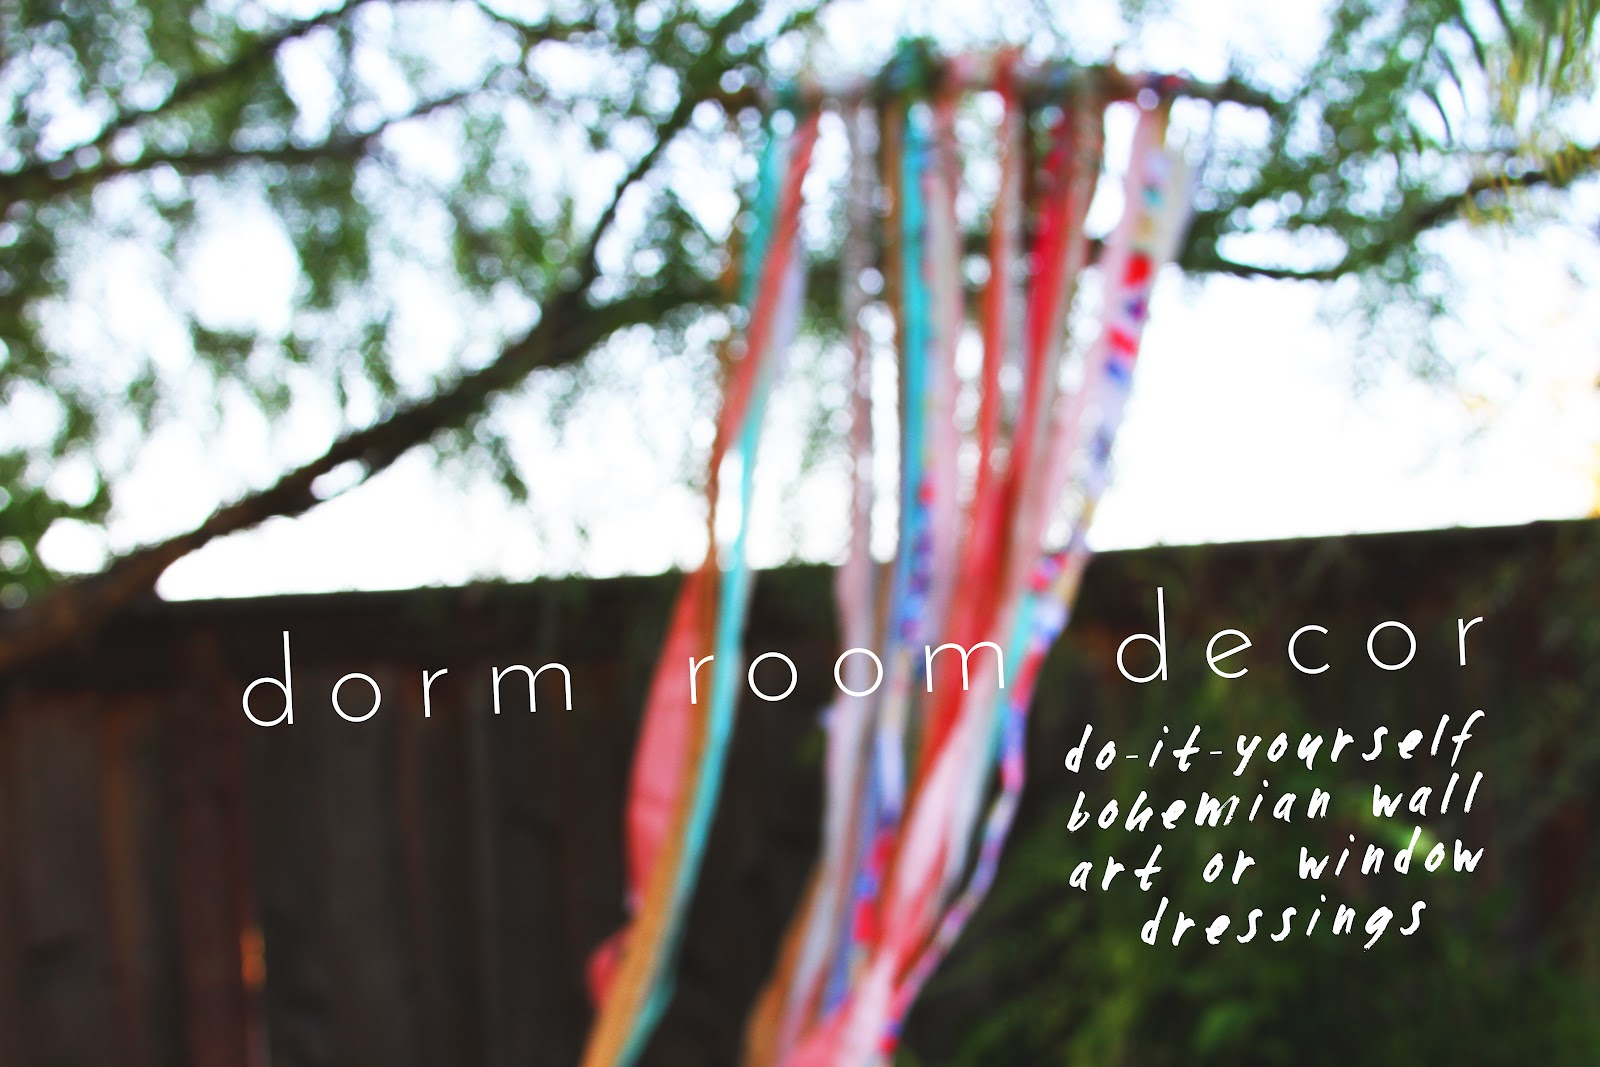 bedroom decorations for teenage girls DIY DORM ROOM DECOR // BOHEMIAN WALL ART + WINDOW DRESSINGS